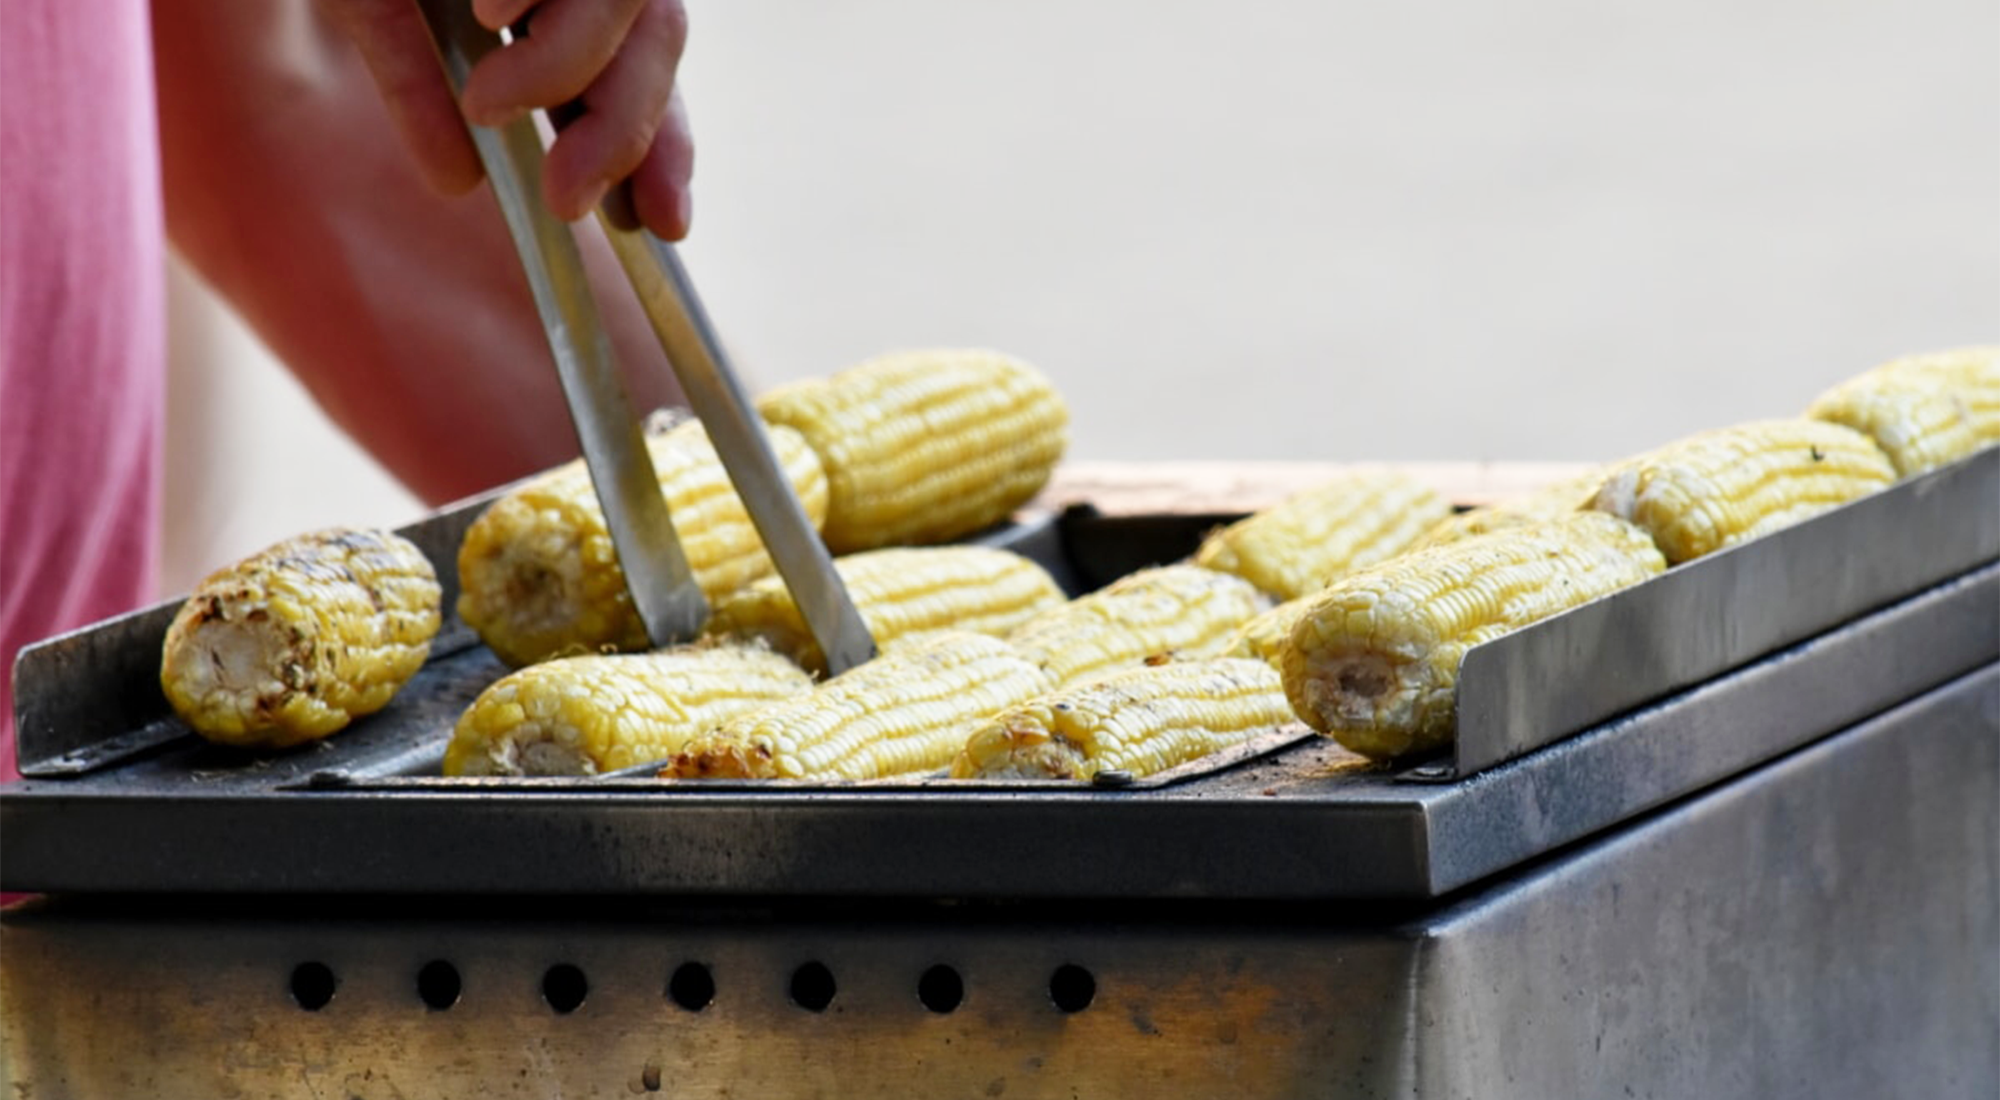 Variety is the spice of life! Corn can be creamed, popped, chowdered, kettled, breadified, and so much more. Have you ever ingested any form of corn in your life?